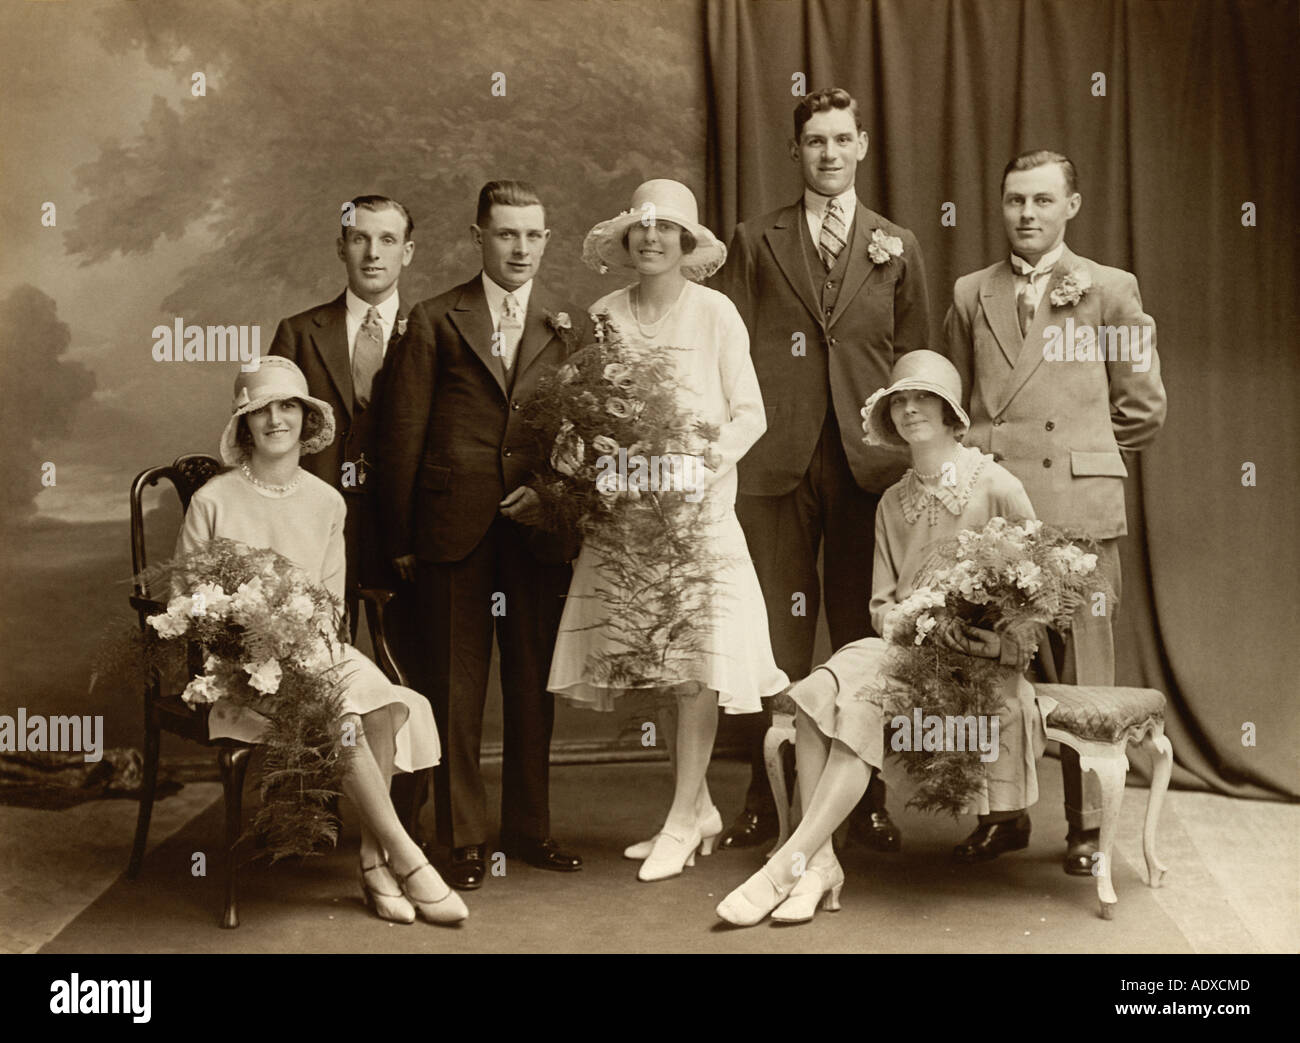 1920s wedding group with bride and groom by foulds and hibberd ltd 1920s wedding group with bride and groom by foulds and hibberd ltd uk junglespirit Image collections